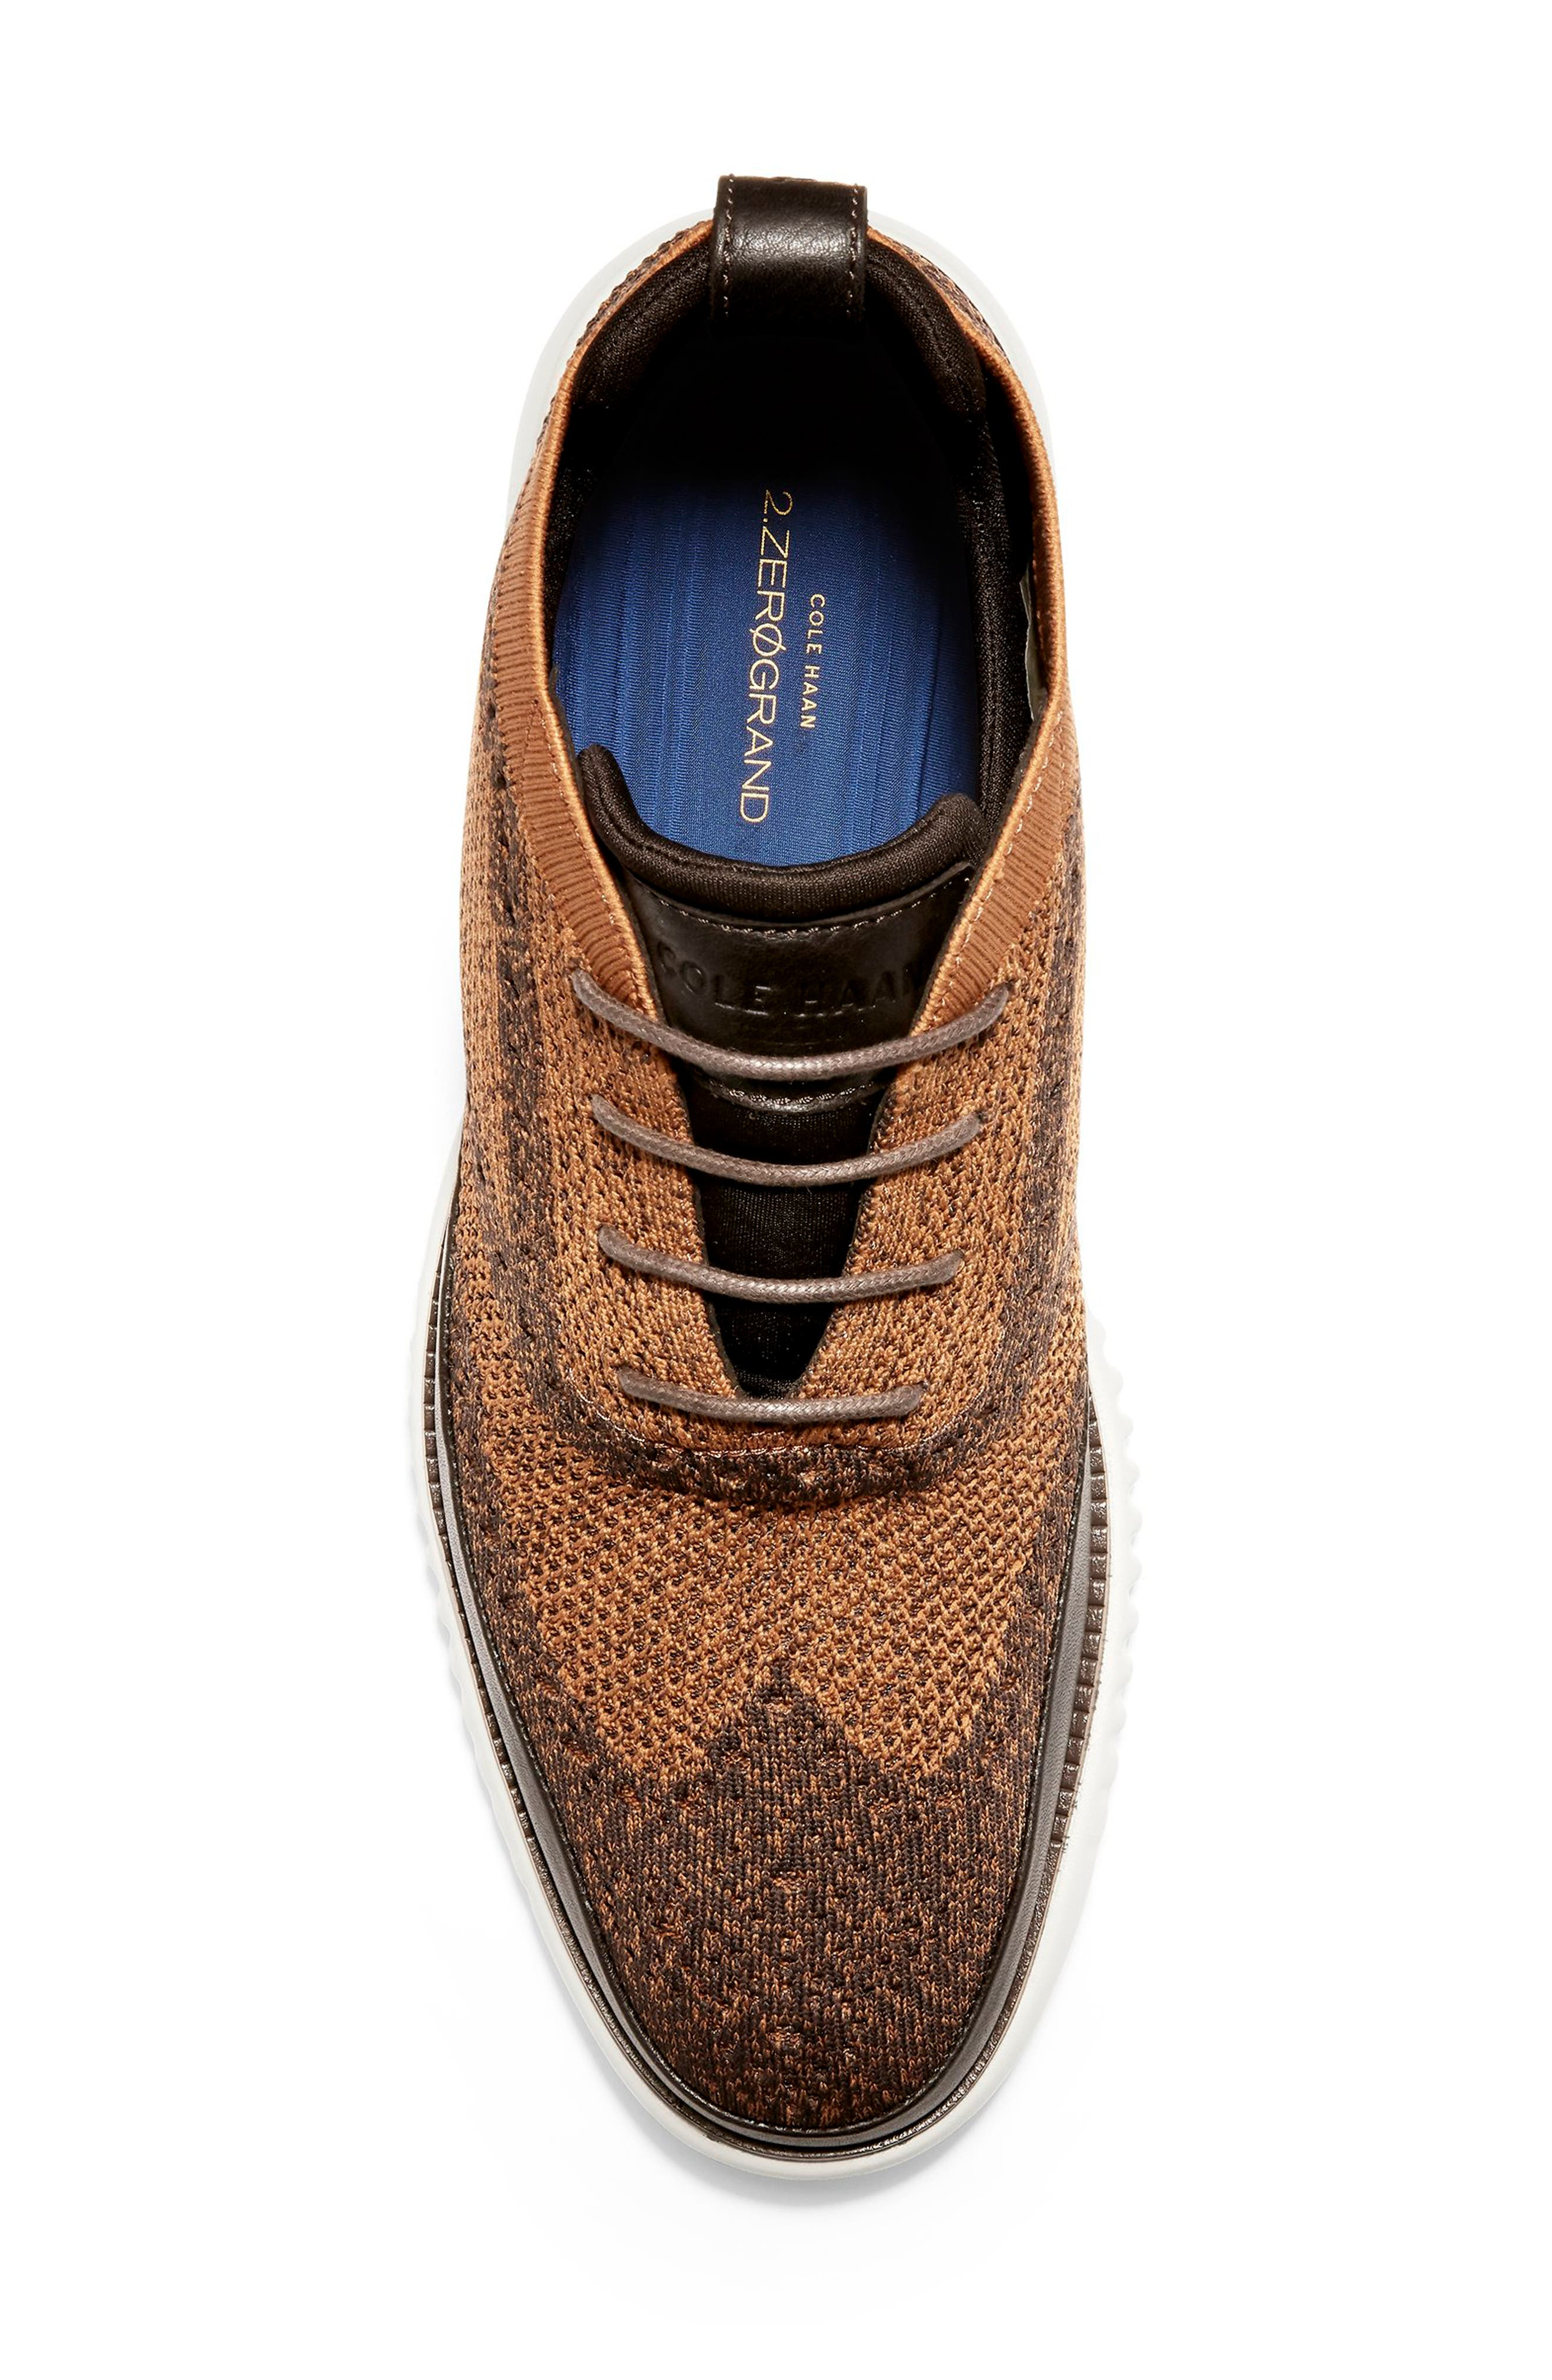 2.ZeroGrand Stitchlite Water Resistant Chukka Boot,                             Alternate thumbnail 5, color,                             BROWN HEATHERED KNIT